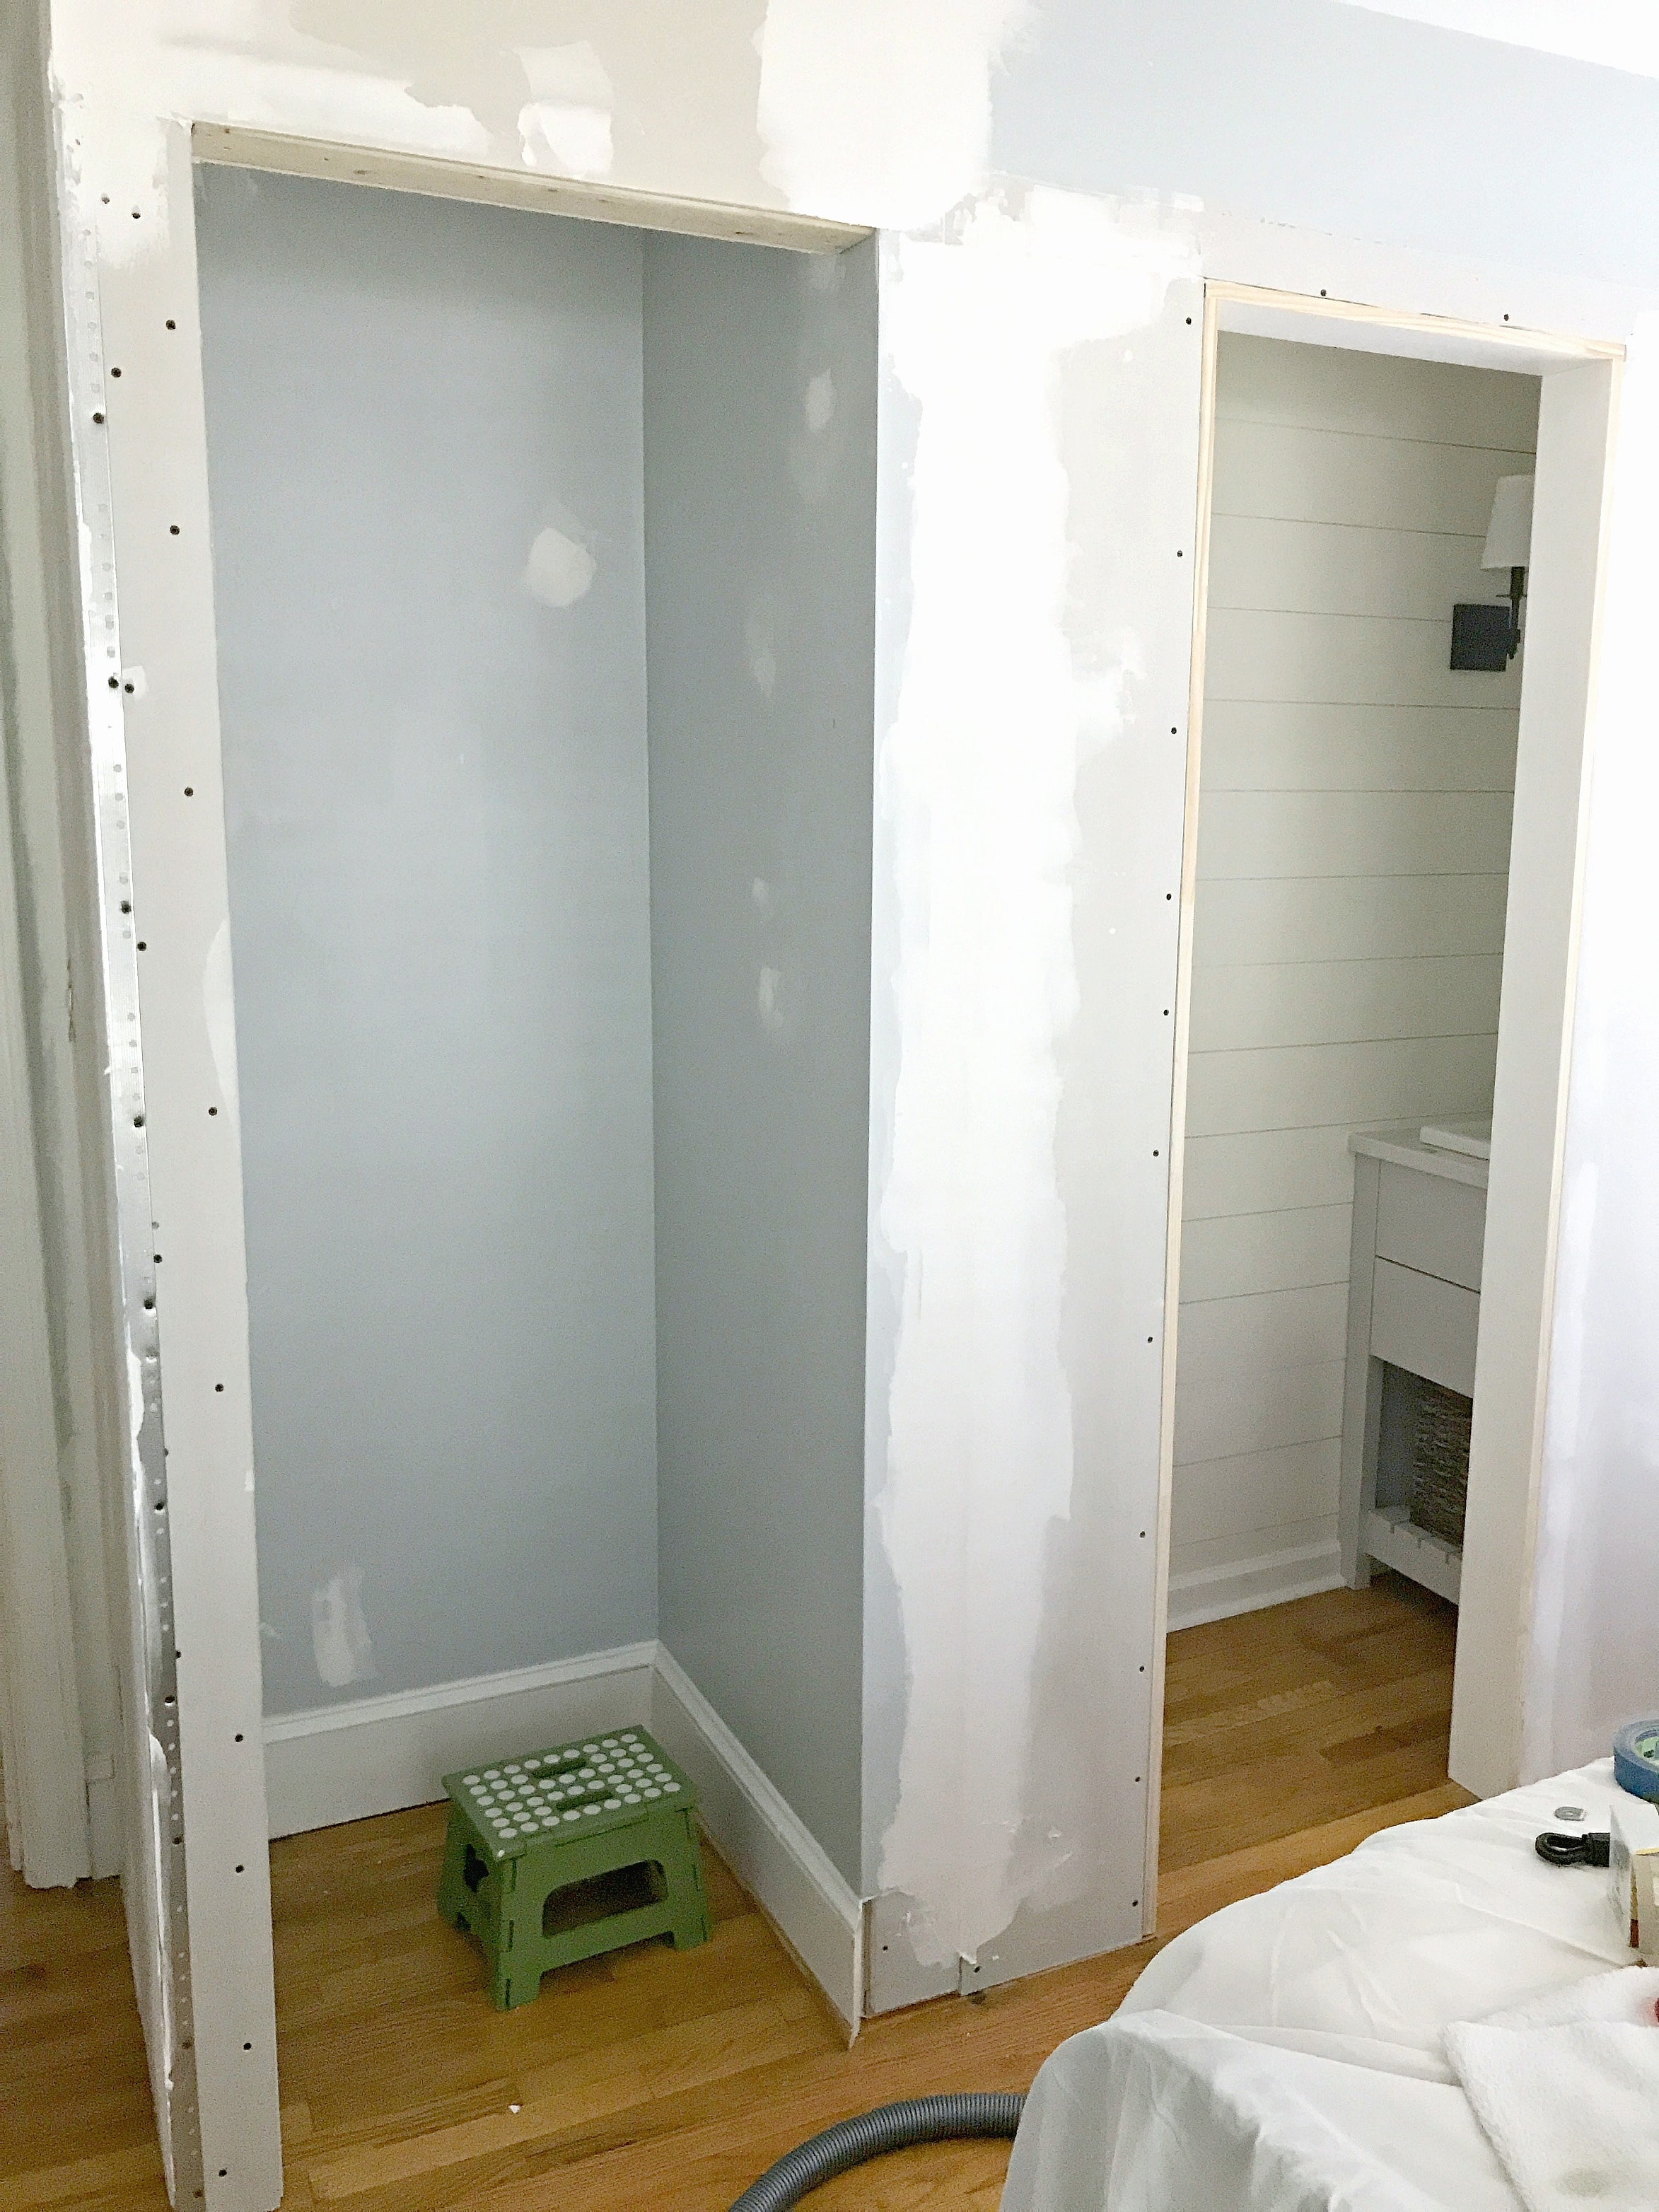 Building the walls for a small bedroom closet